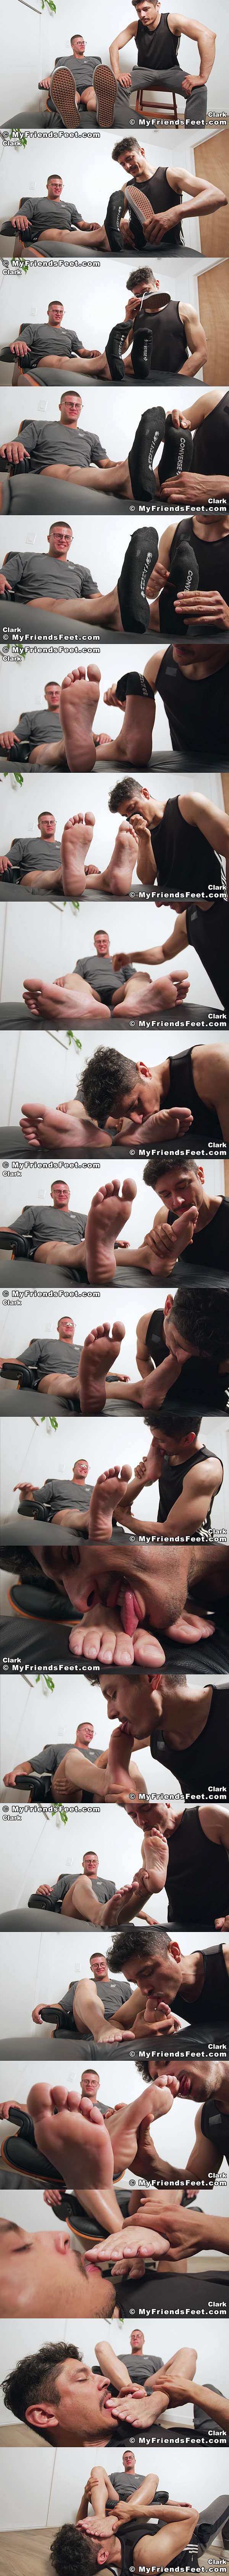 Foot slave Rocky Vallarta worships hot newcomer, young straight bodybuilder Clark's sports socks and size 9 bare feet in Clark's Feet Worshiped at Myfriendsfeet 01